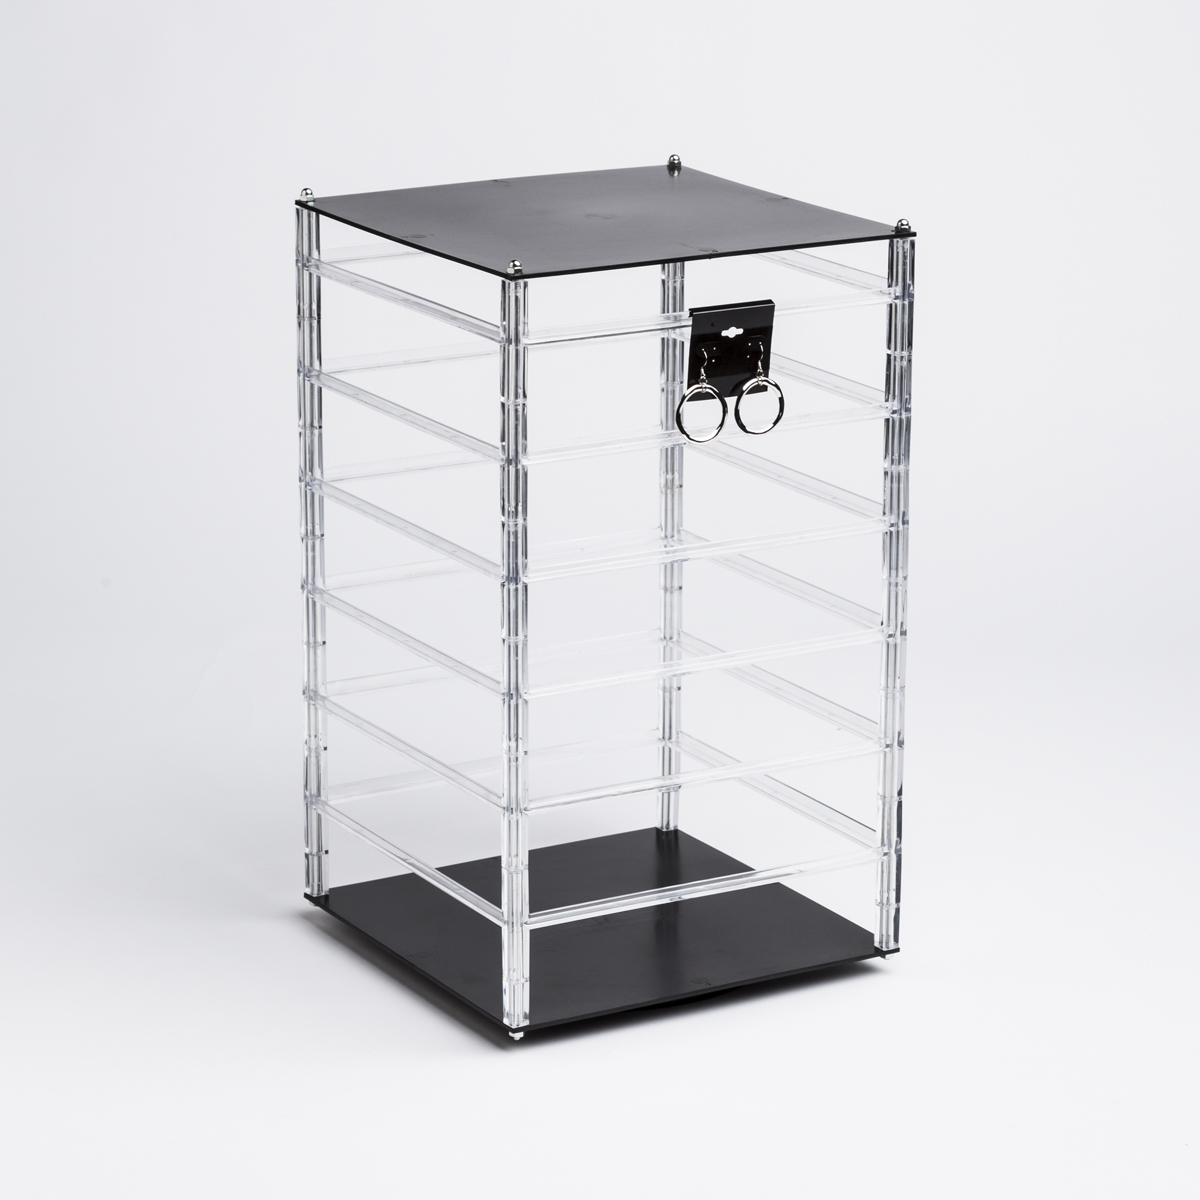 Acrylic Revolving Display Case A Amp B Store Fixtures